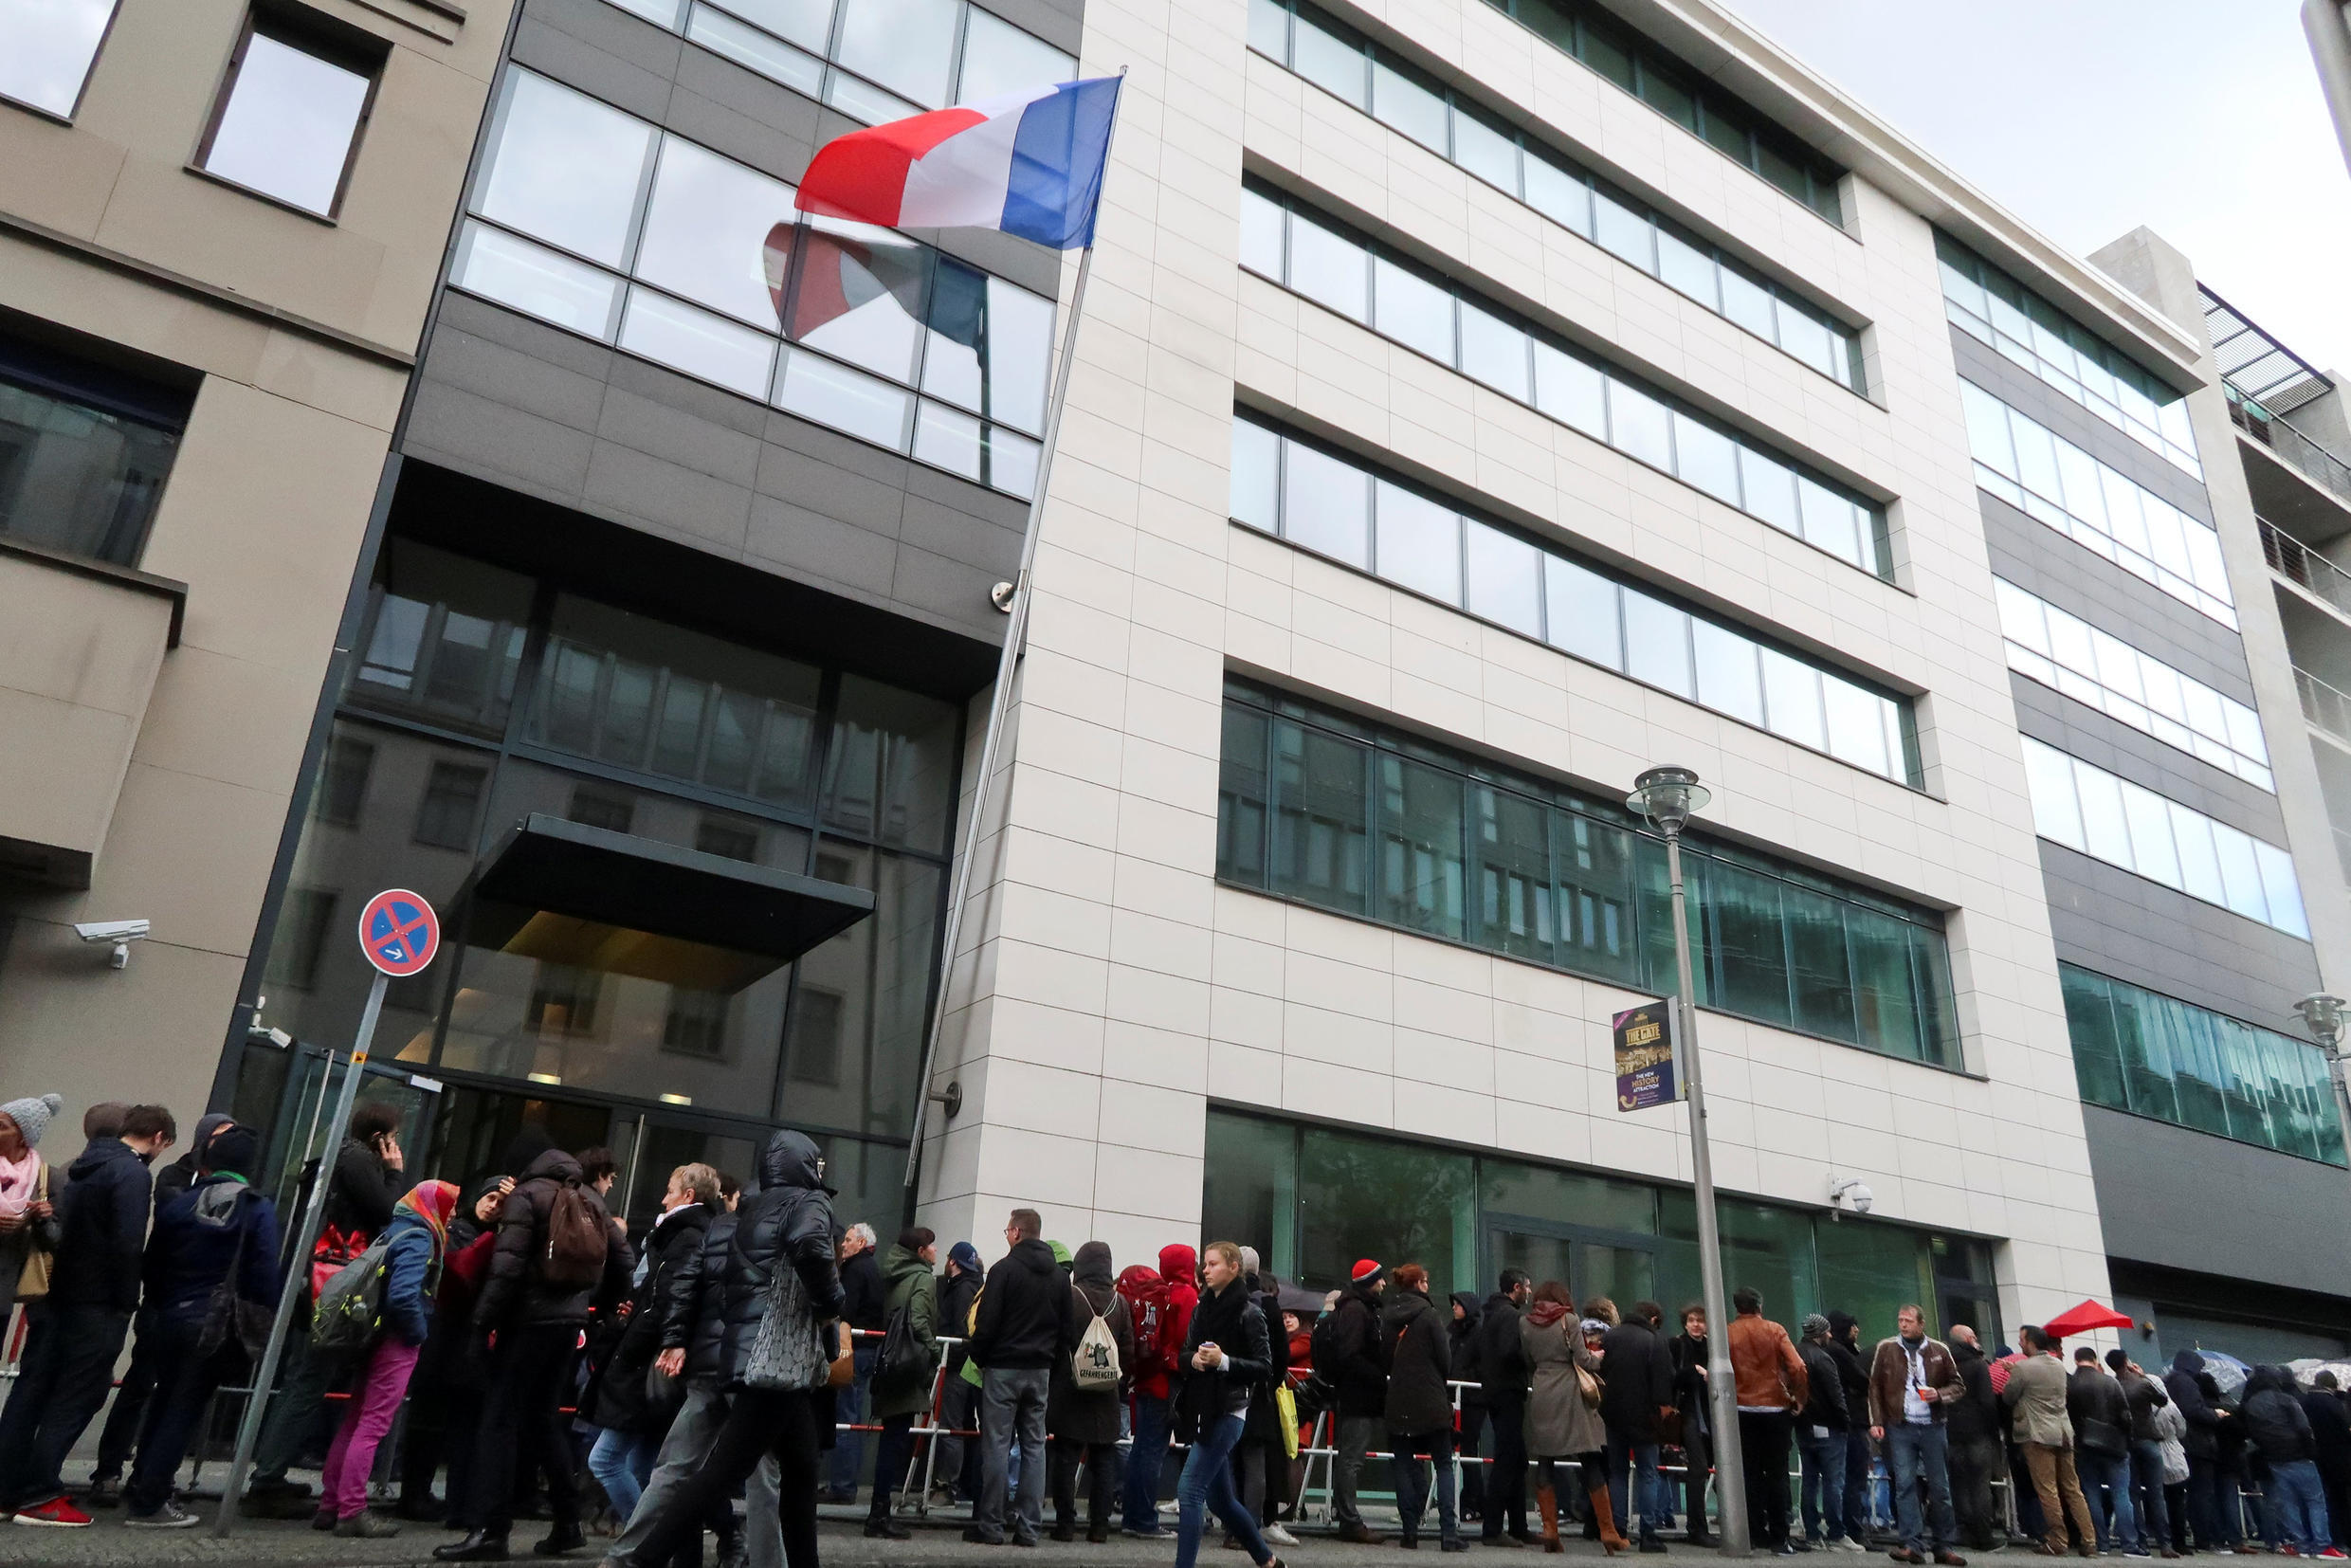 Hundreds of French expats queue in front of the consulate in Berlin, Germany April 23, 2017, to cast their vote in the first round of the presidential election in France